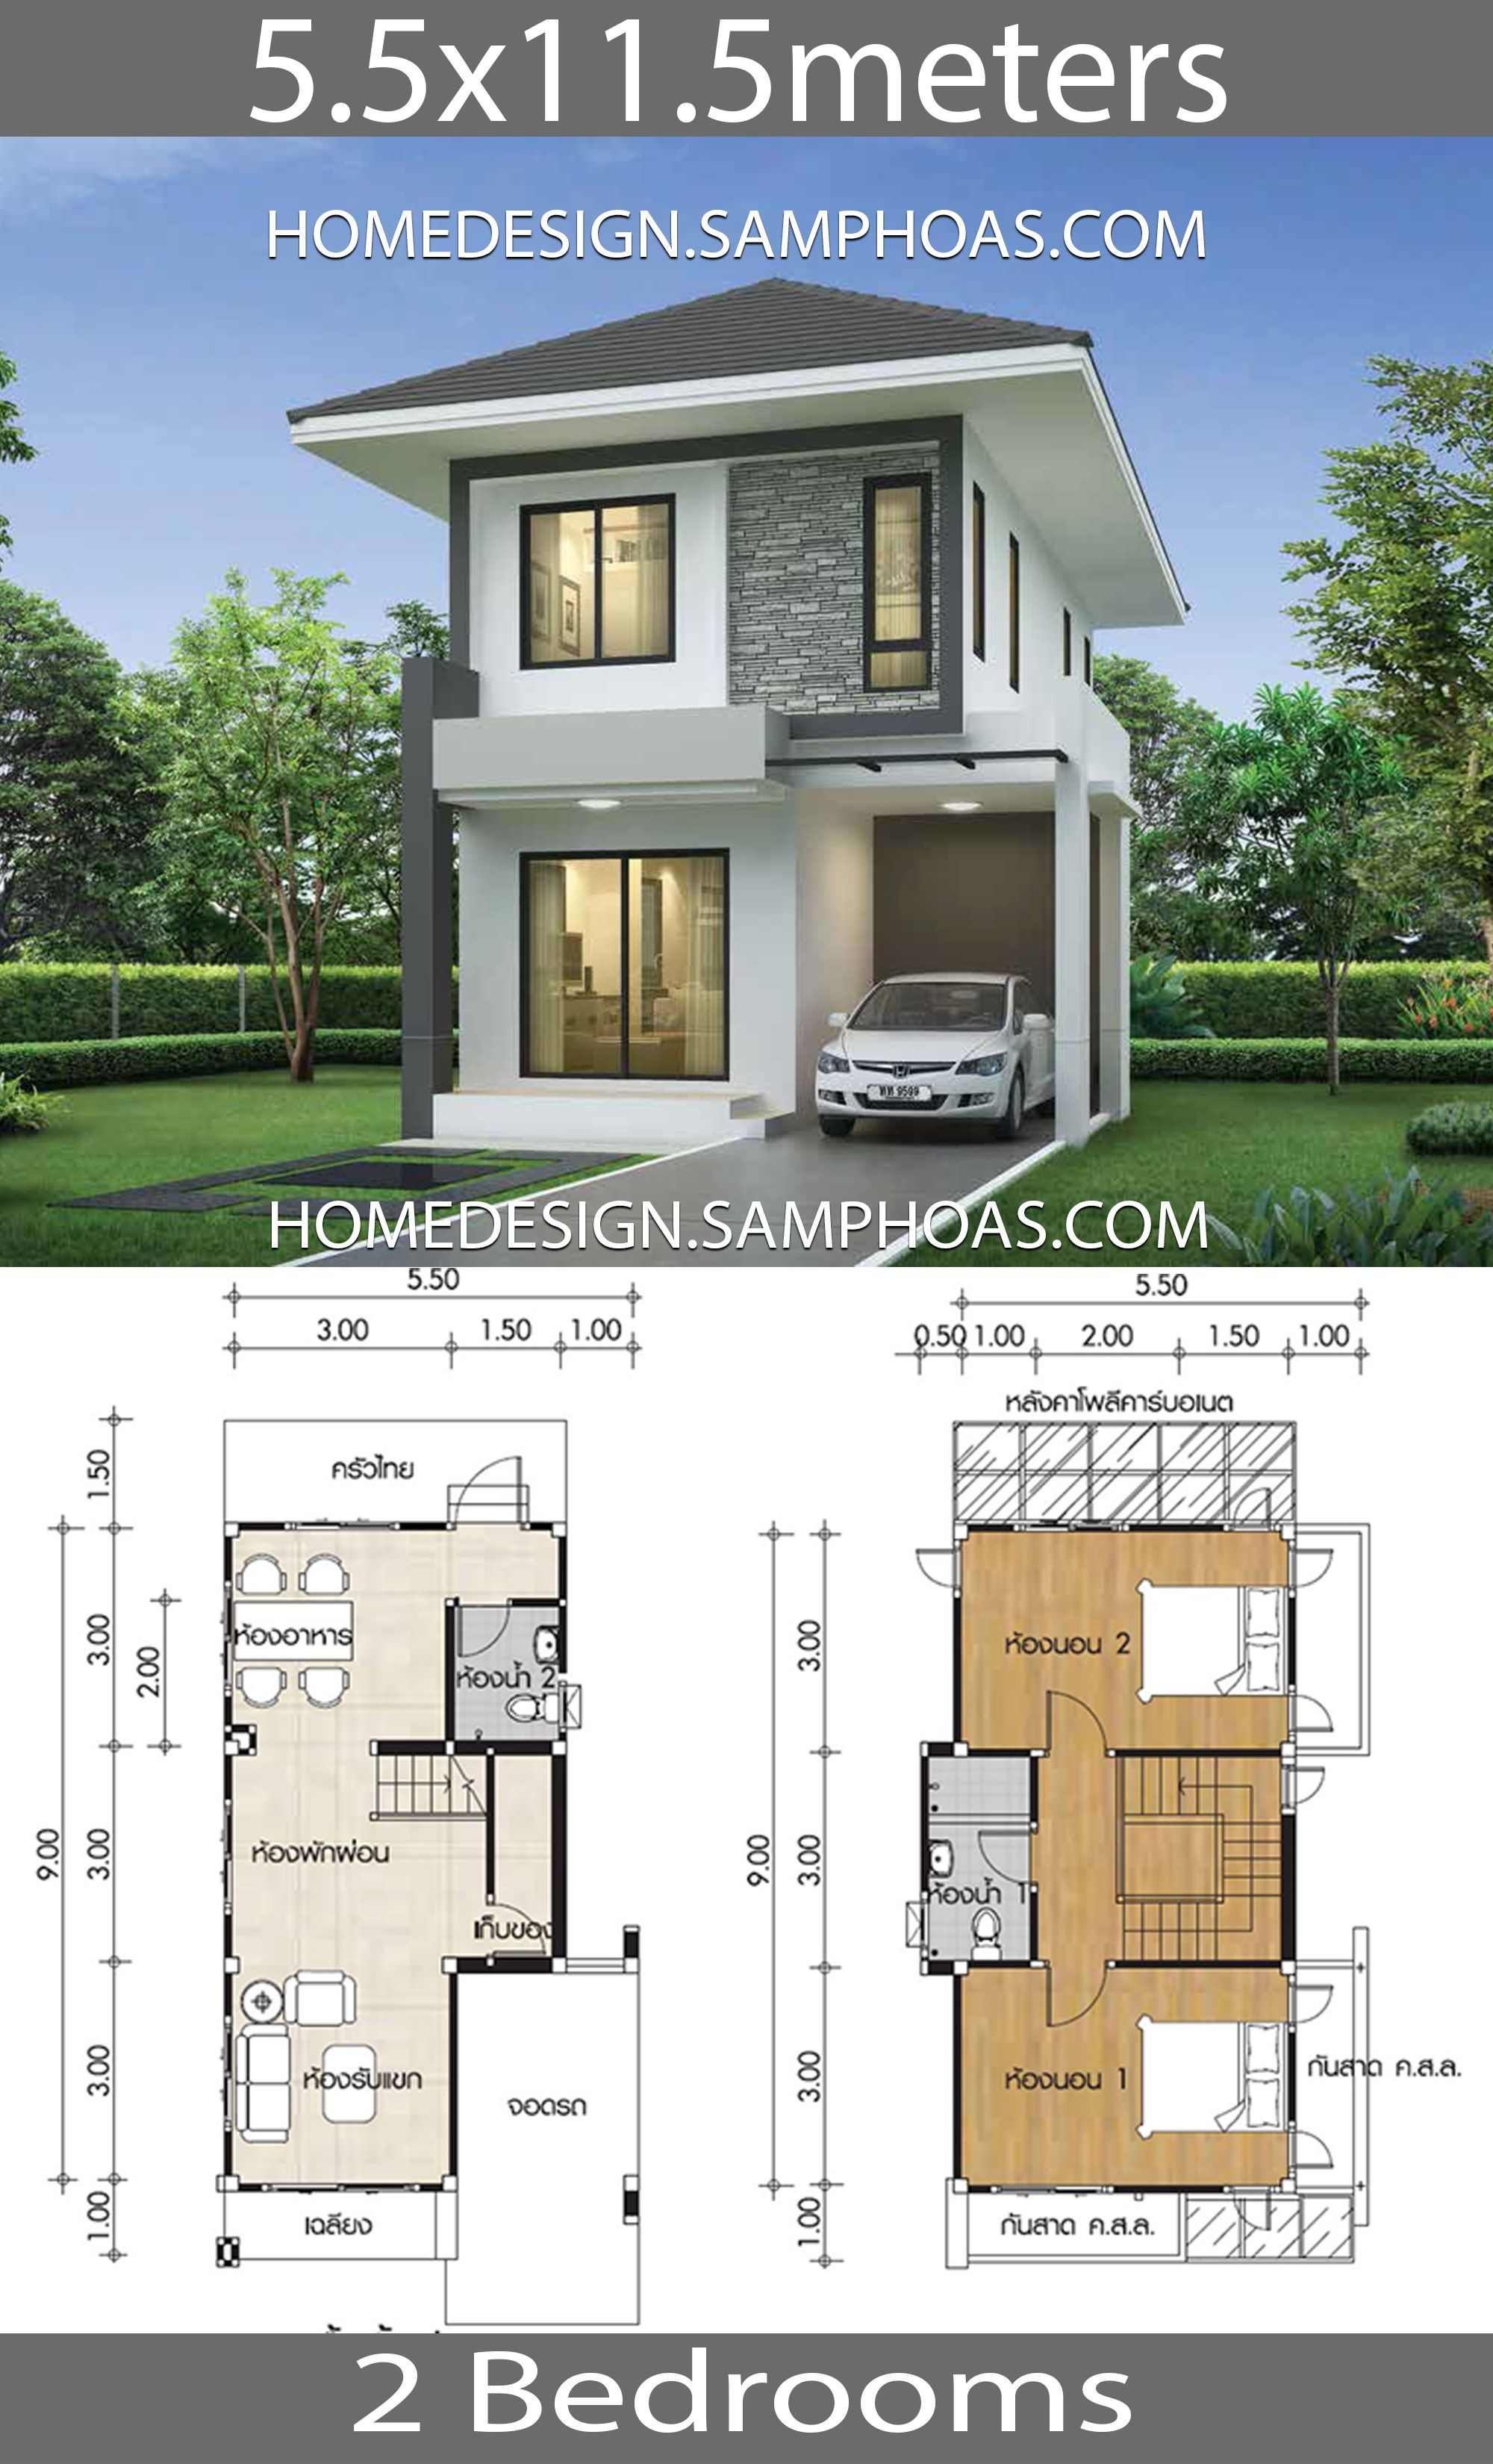 20 House Design With Layout Plans You Wish To See House Plans 3d Small House Design Plans Small House Design Modern House Plans